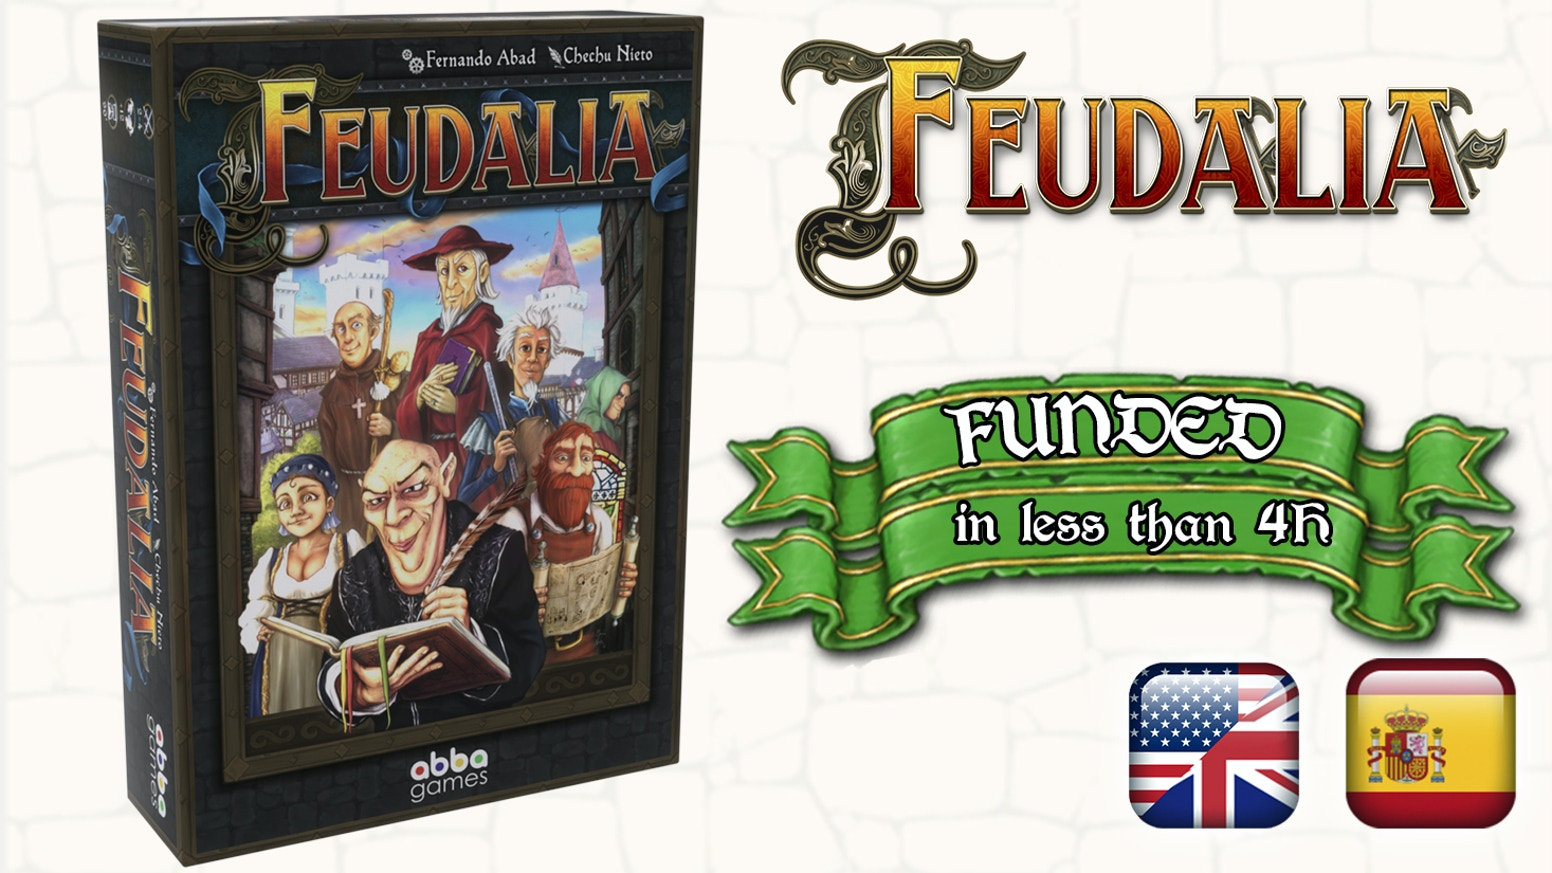 Feudalia is a deck-building and resource management game for 1-4 players, who will take the roles of the feudal lords of the new lands.